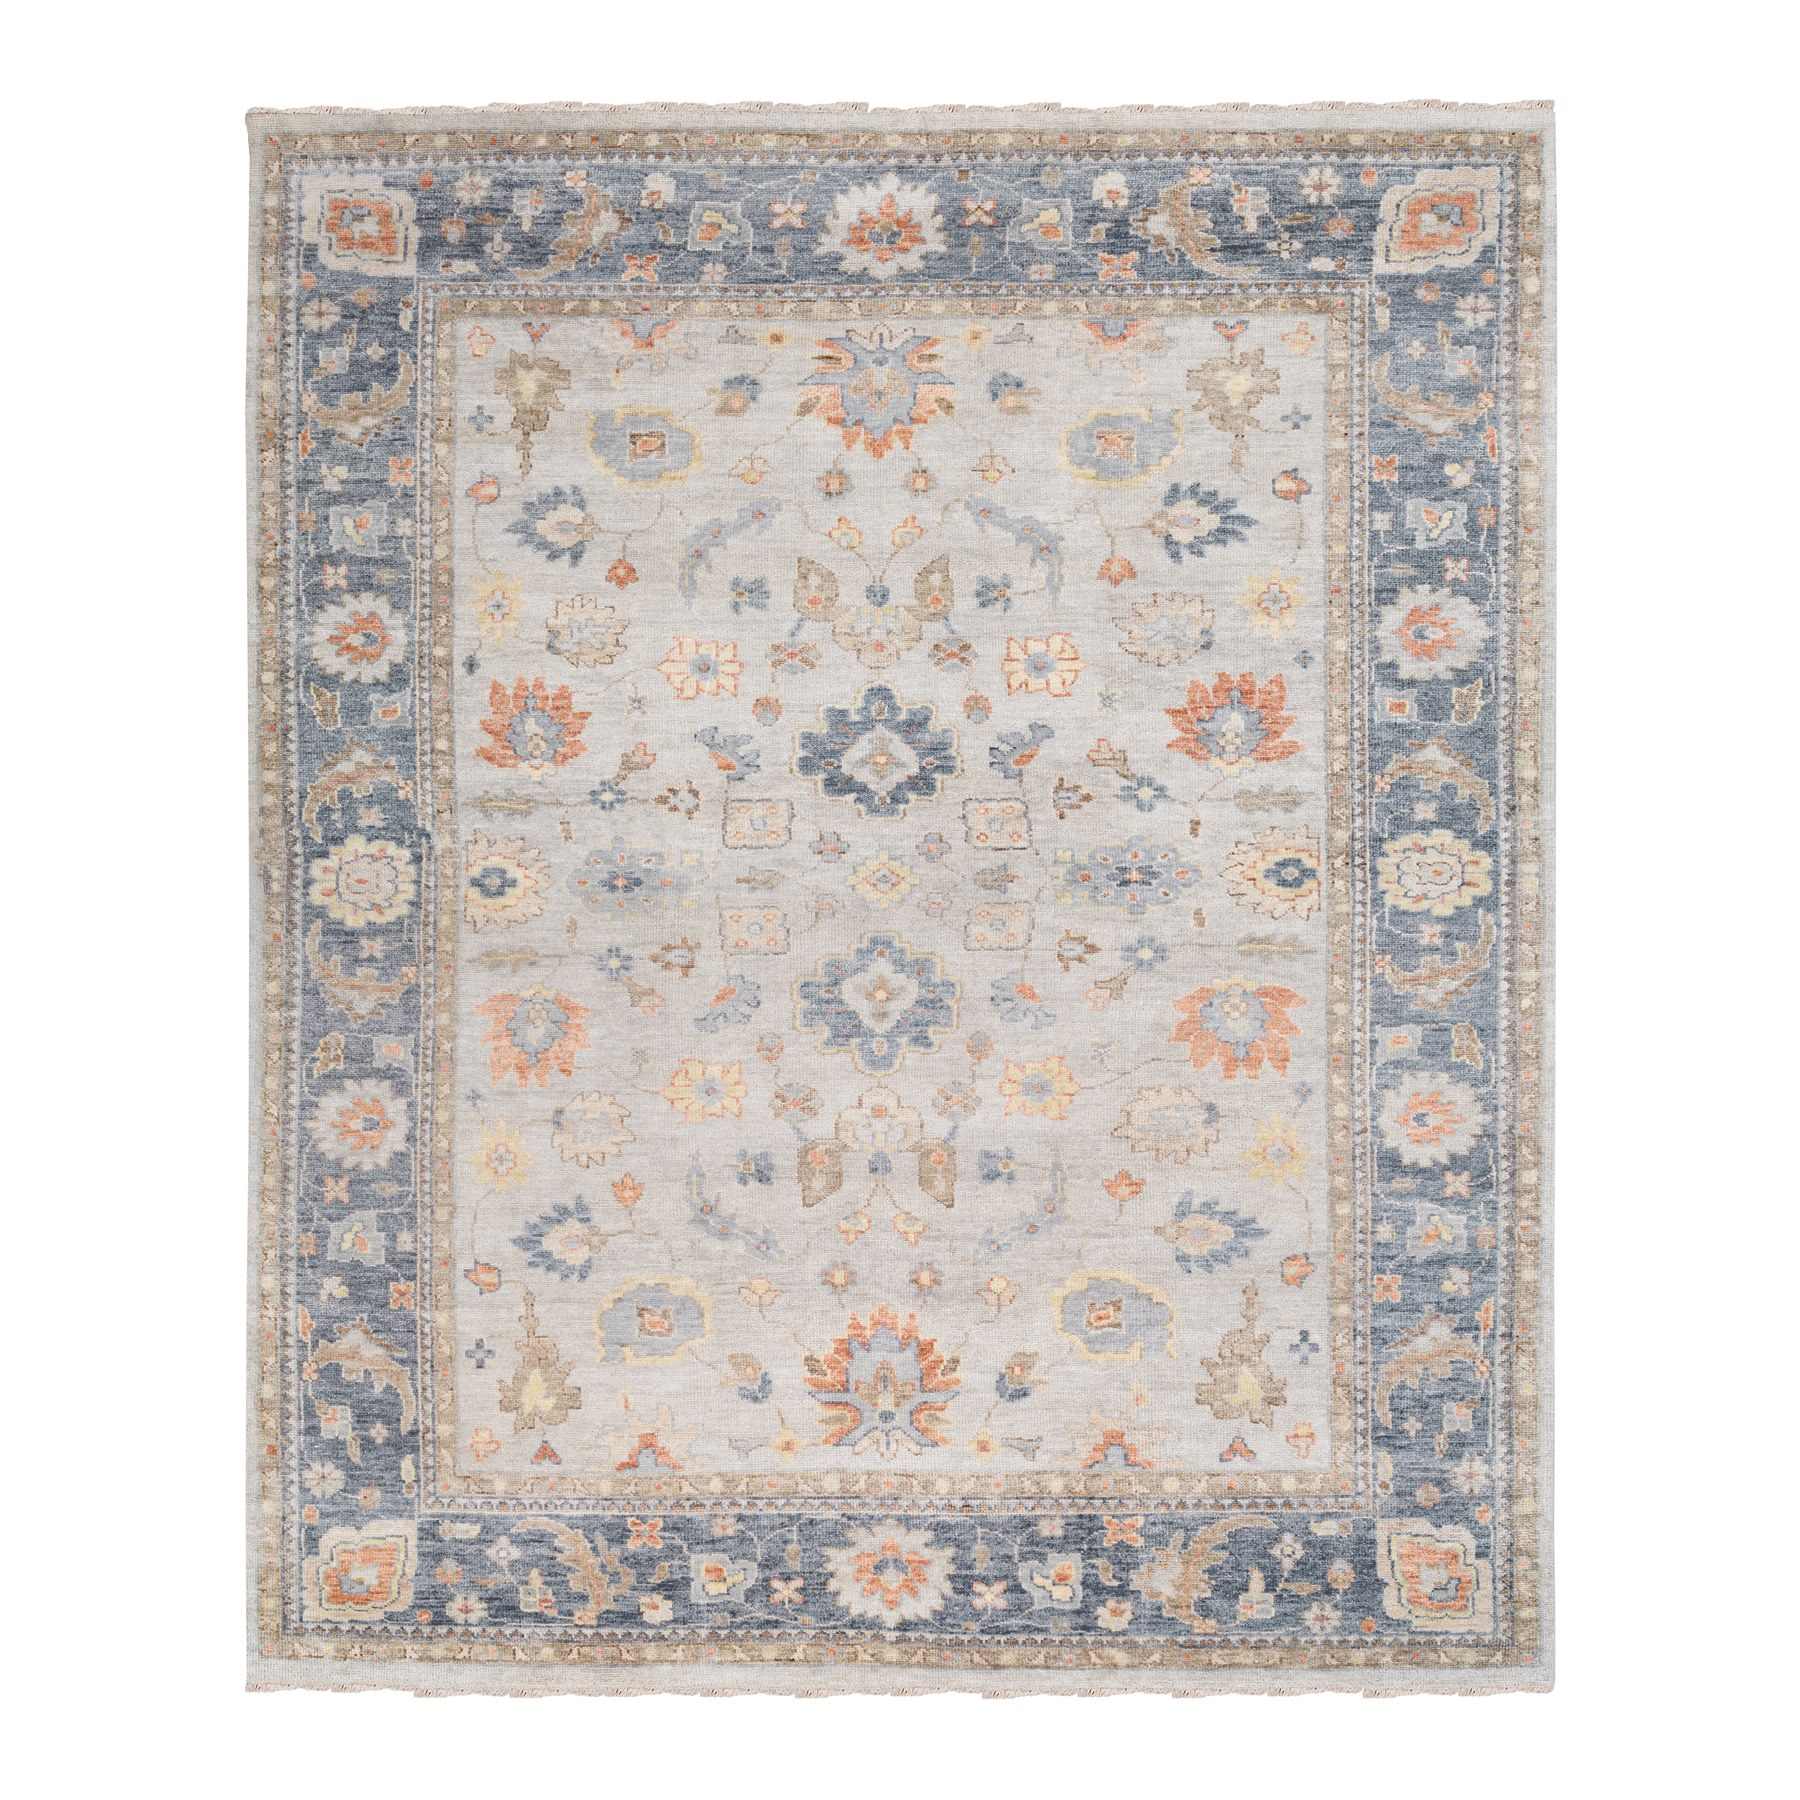 "11'10""x15'1"" Oversized Ivory-Blue Supple Collection Oushak Design Organic Wool Hand Knotted Oriental Rug"